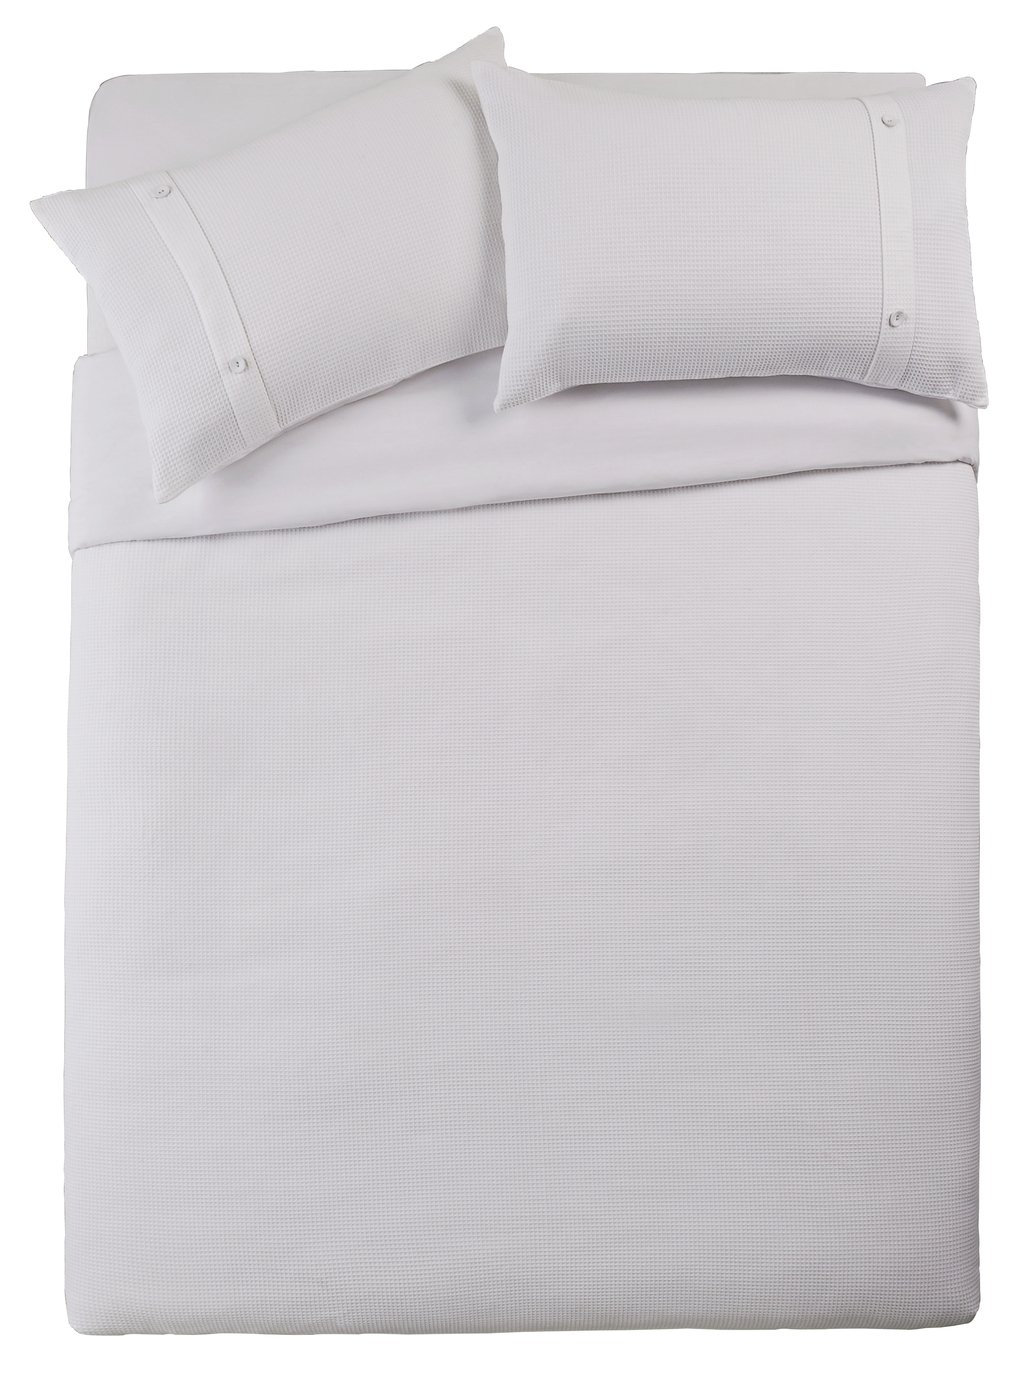 Argos Home White Waffle Cuff Bedding Set - Double